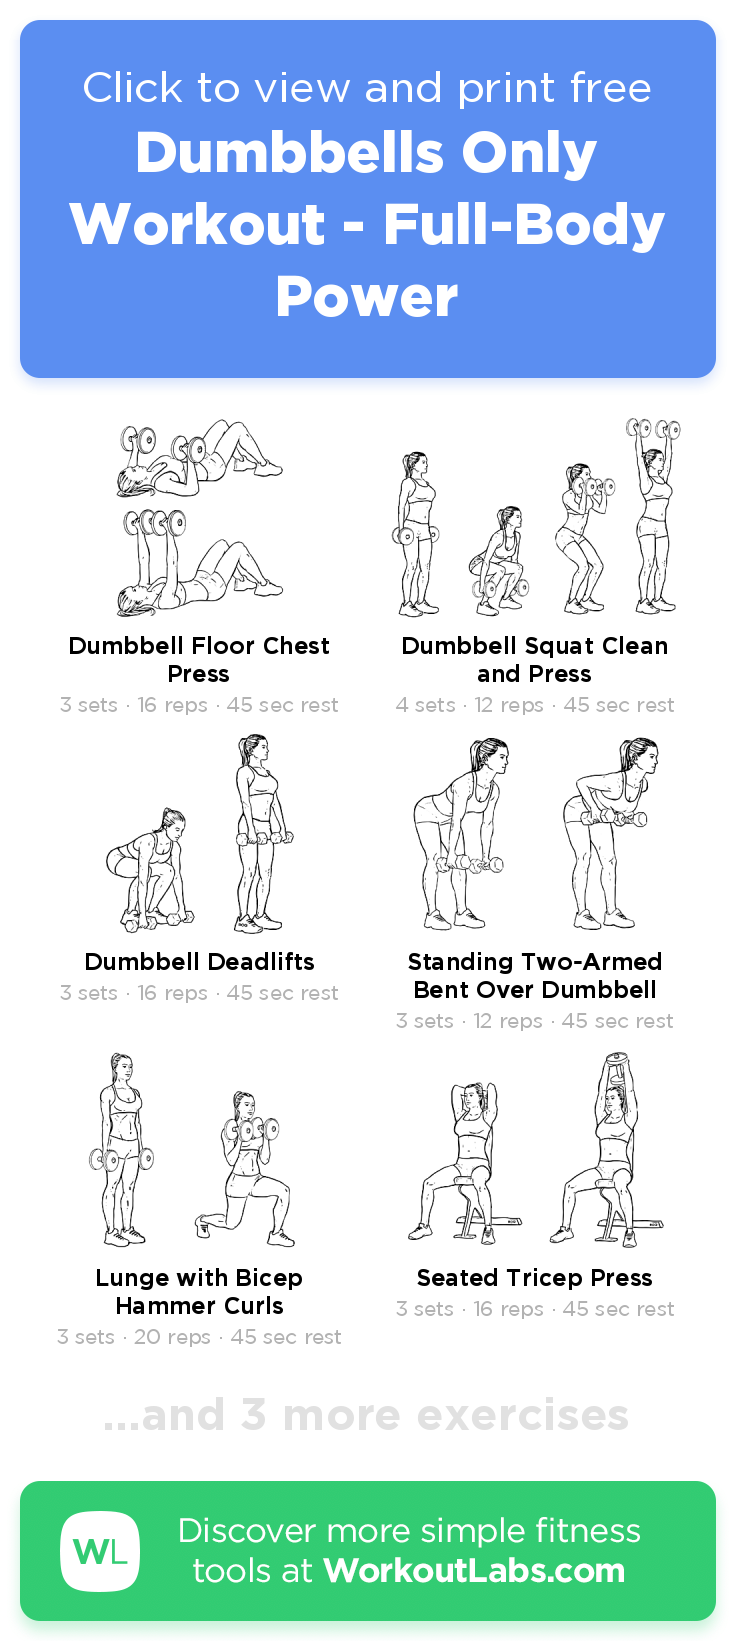 Dumbbells Only Workout - Full-Body Power · Free workout by WorkoutLabs Fit